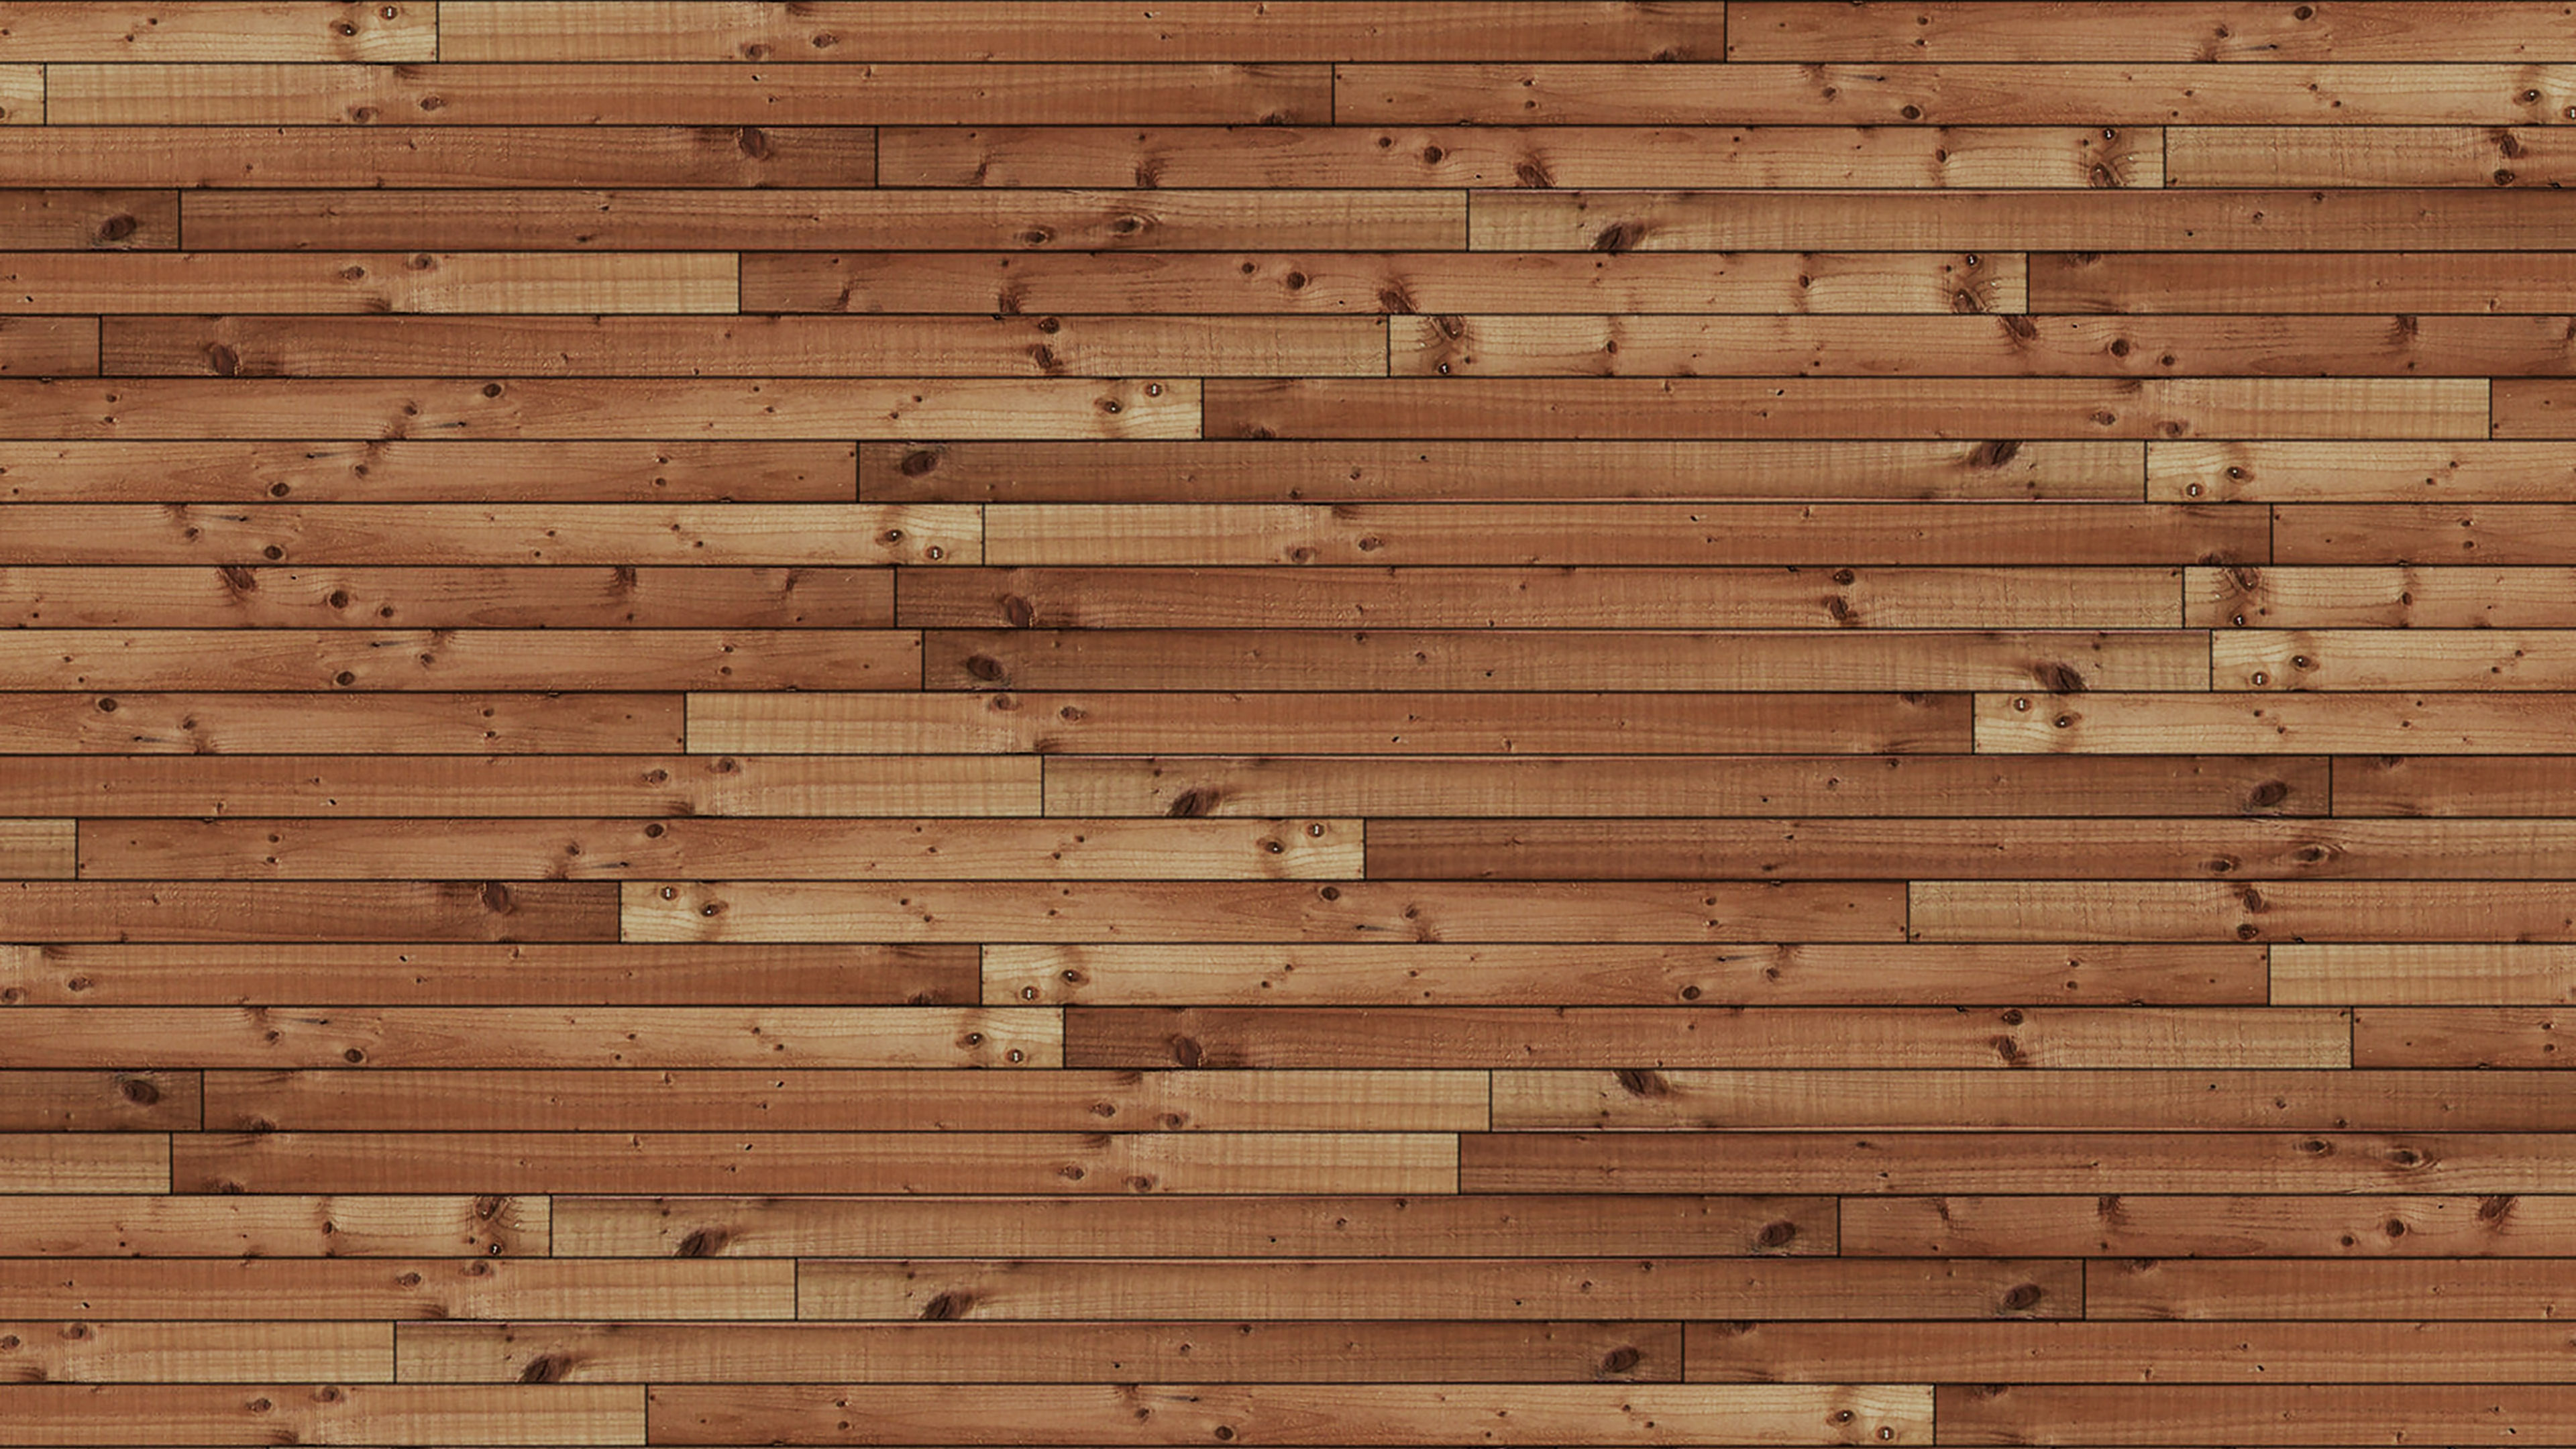 Va98 Wallpaper Wood Desk Texture Papers Co